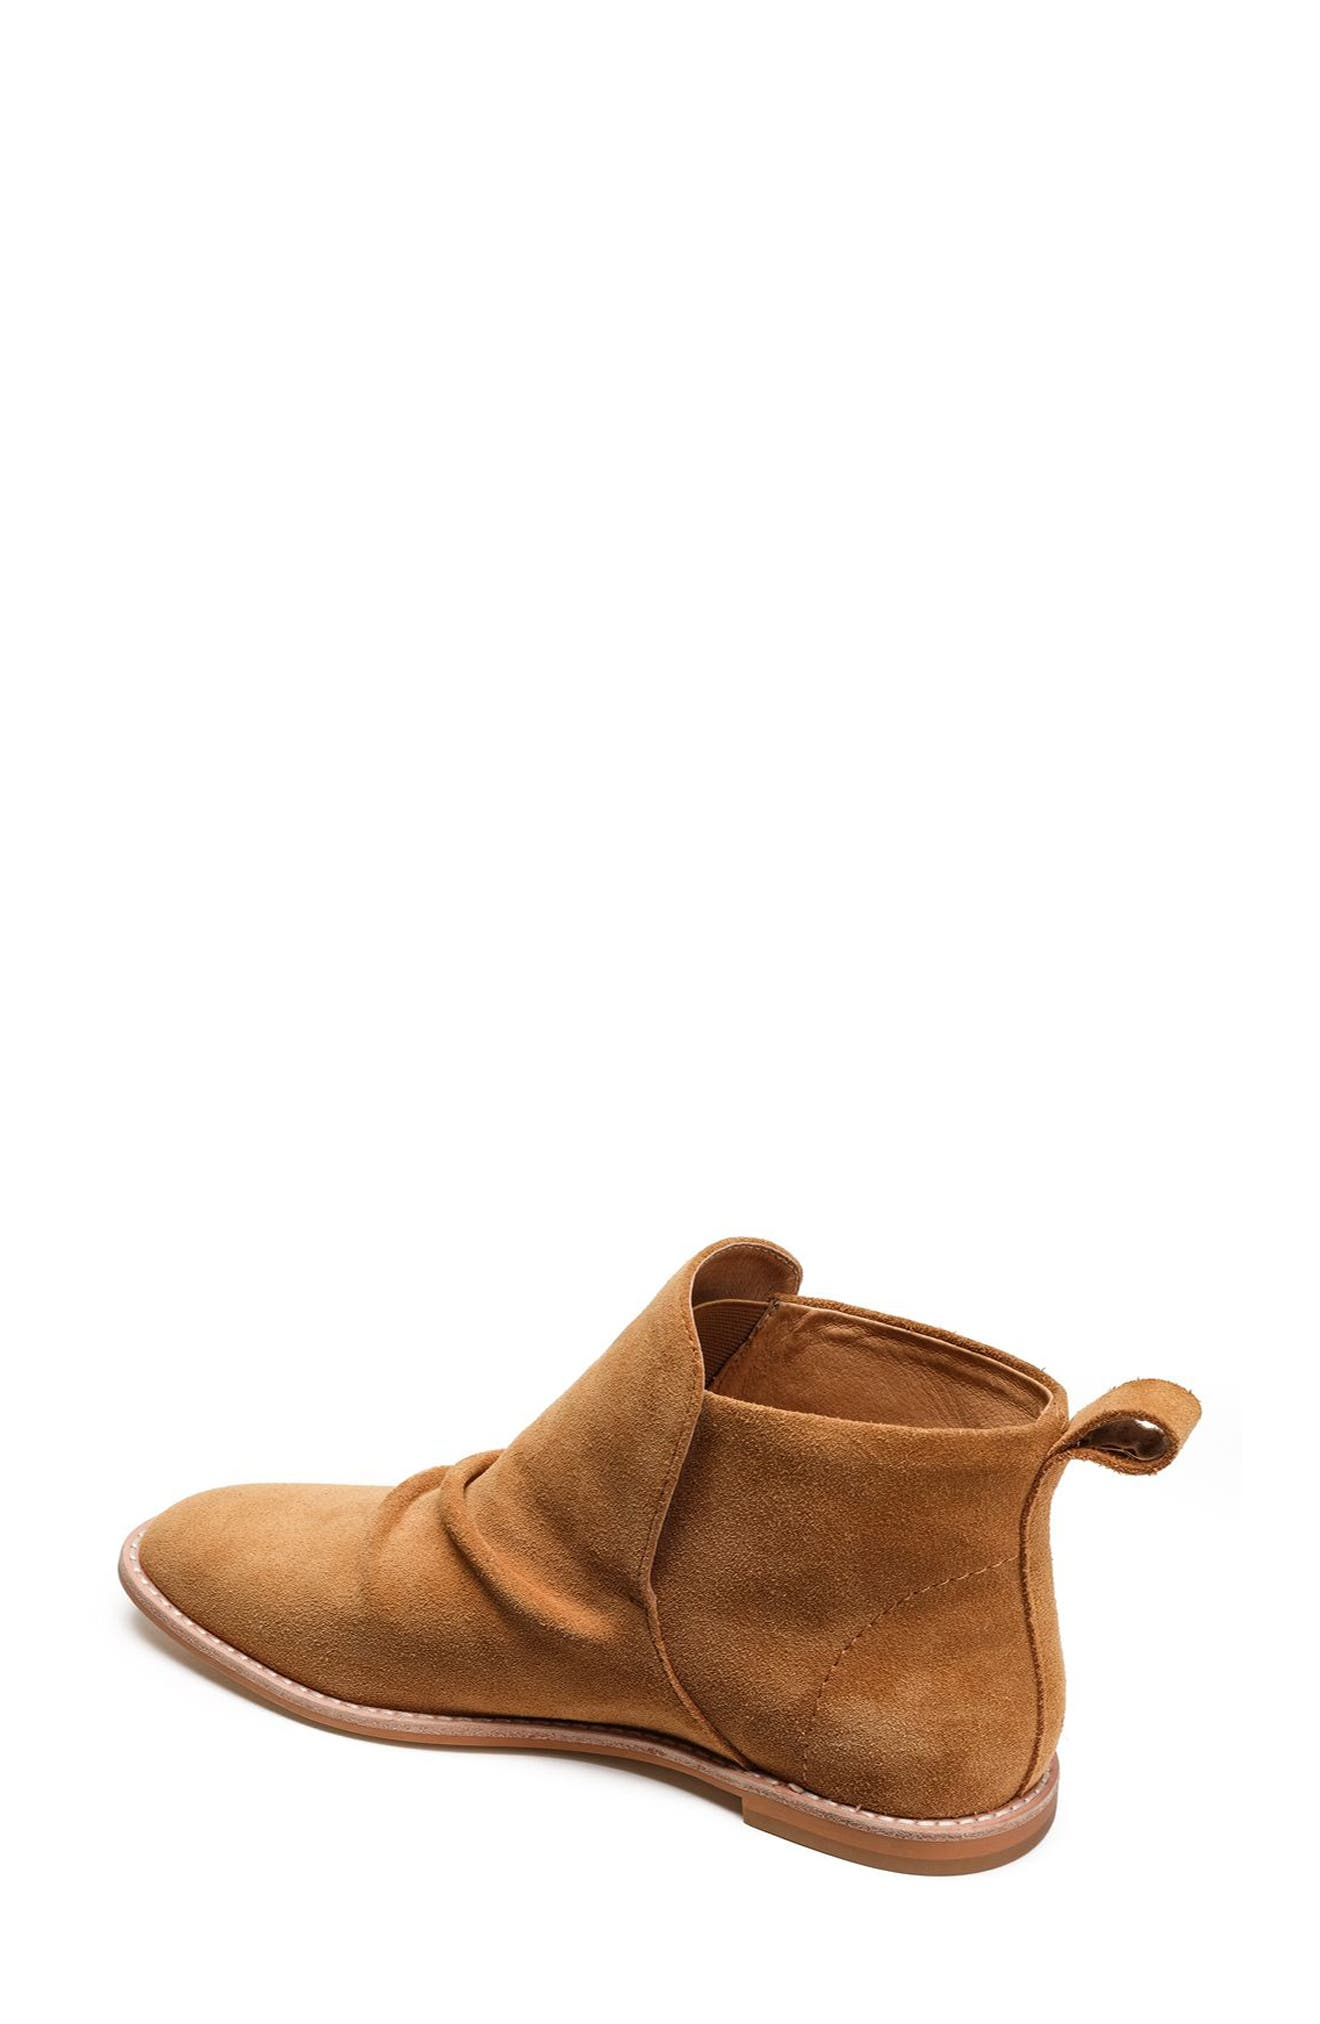 Macey Bootie,                             Alternate thumbnail 5, color,